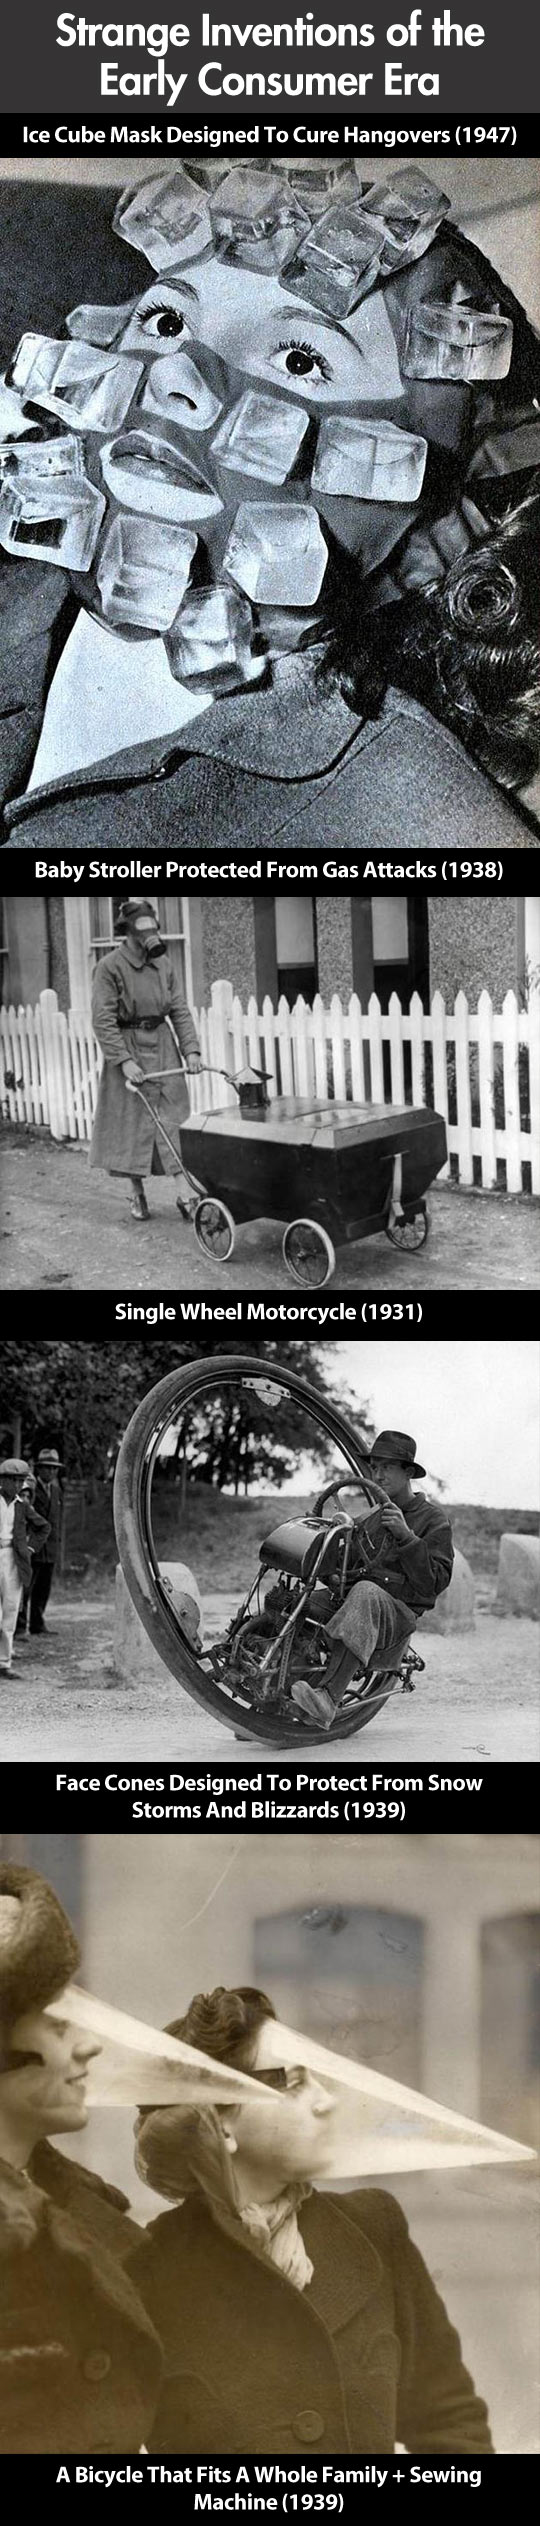 Inventions from the days of yore...